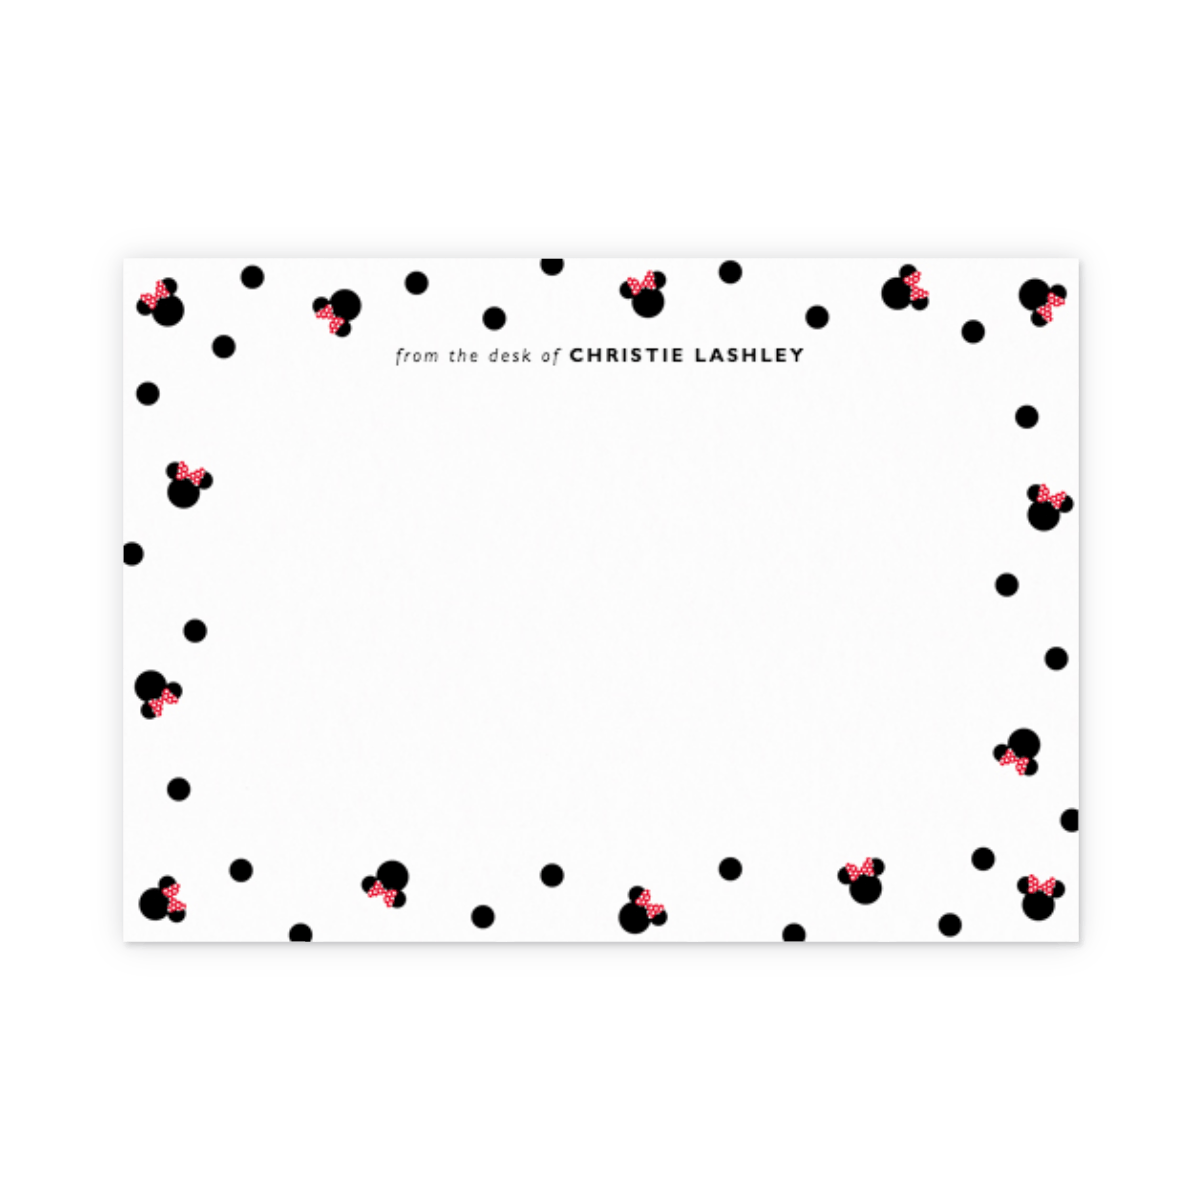 Https%3a%2f%2fwww.papier.com%2fproduct image%2f36028%2f10%2fpolka dot minnie mouse 9016 front 1523611503.png?ixlib=rb 1.1